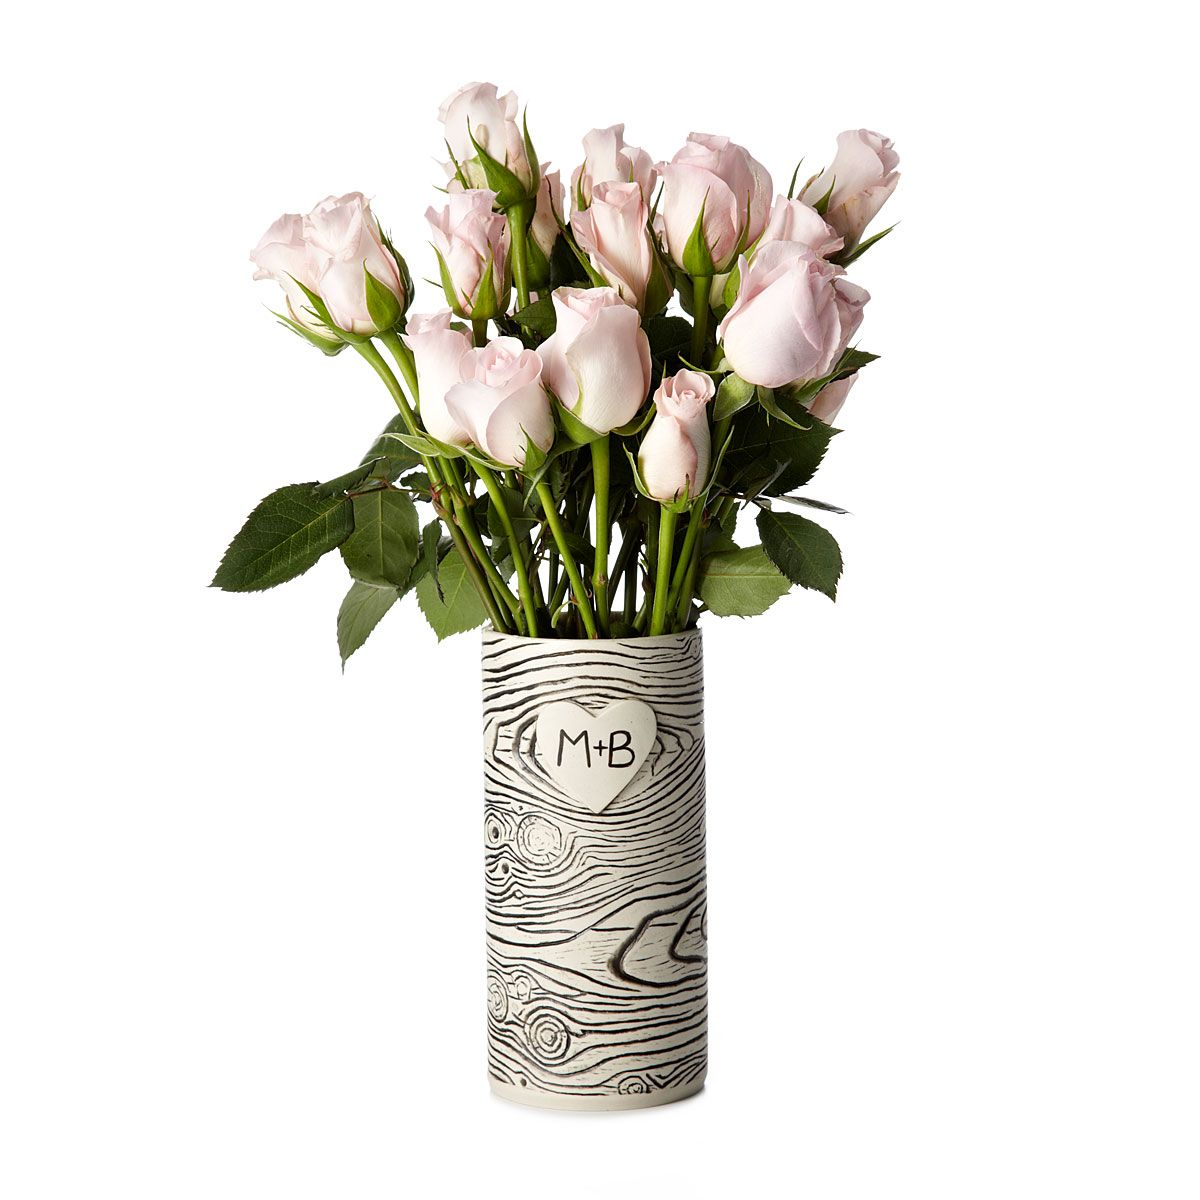 dull colors paint design love traditional wedding wall vase bell carved shaped top round birch personalized cream wood pattern table with interior